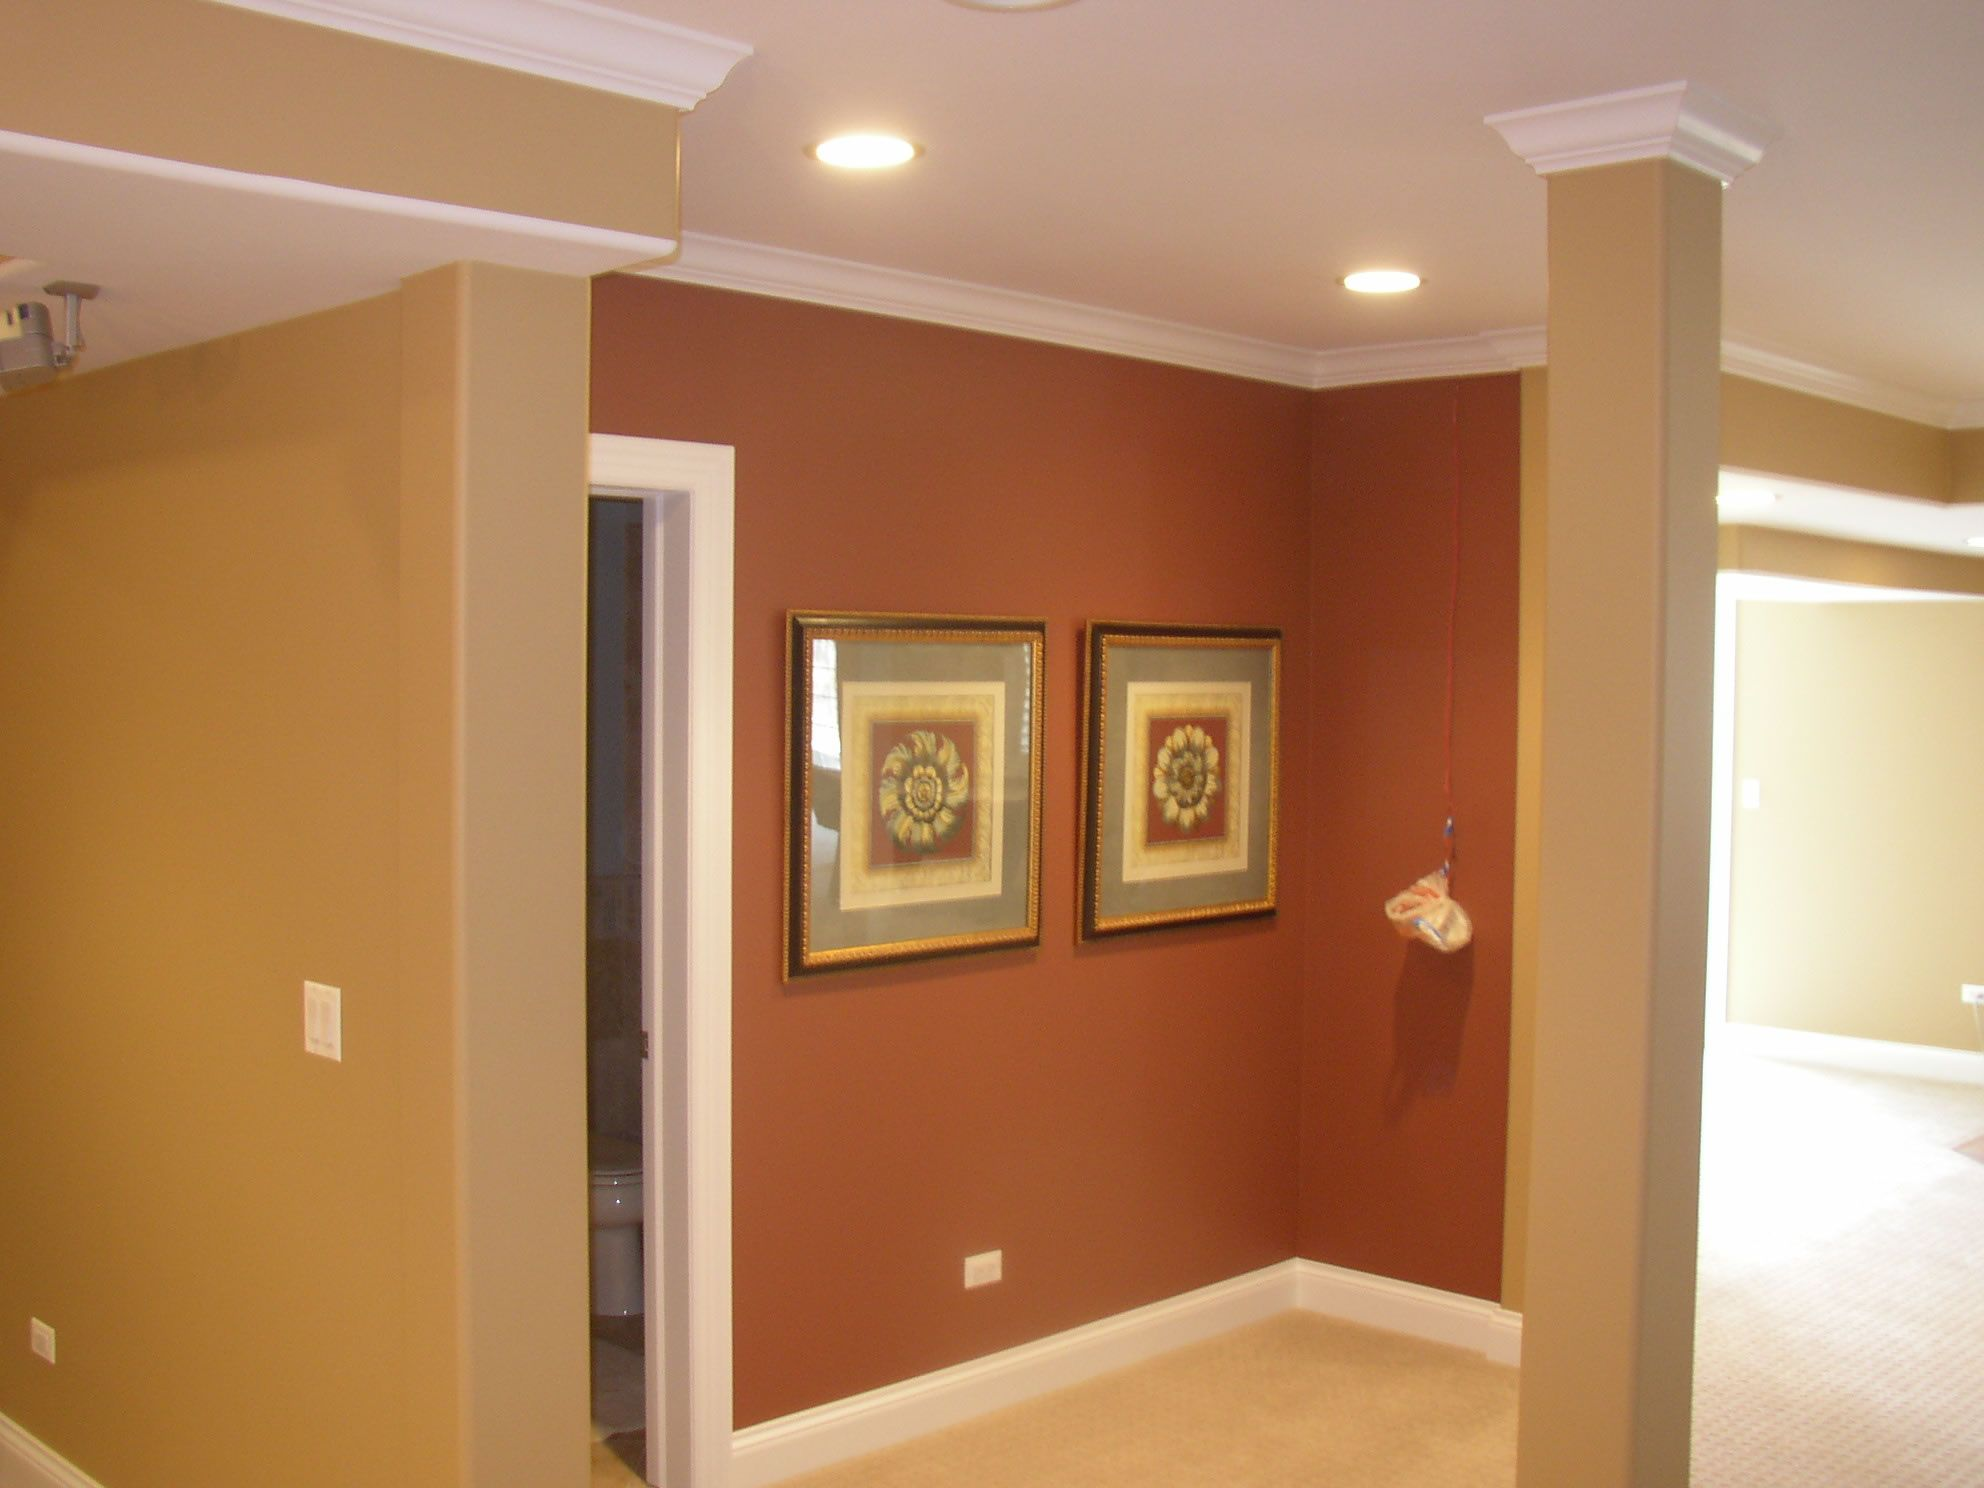 Free images of house painting